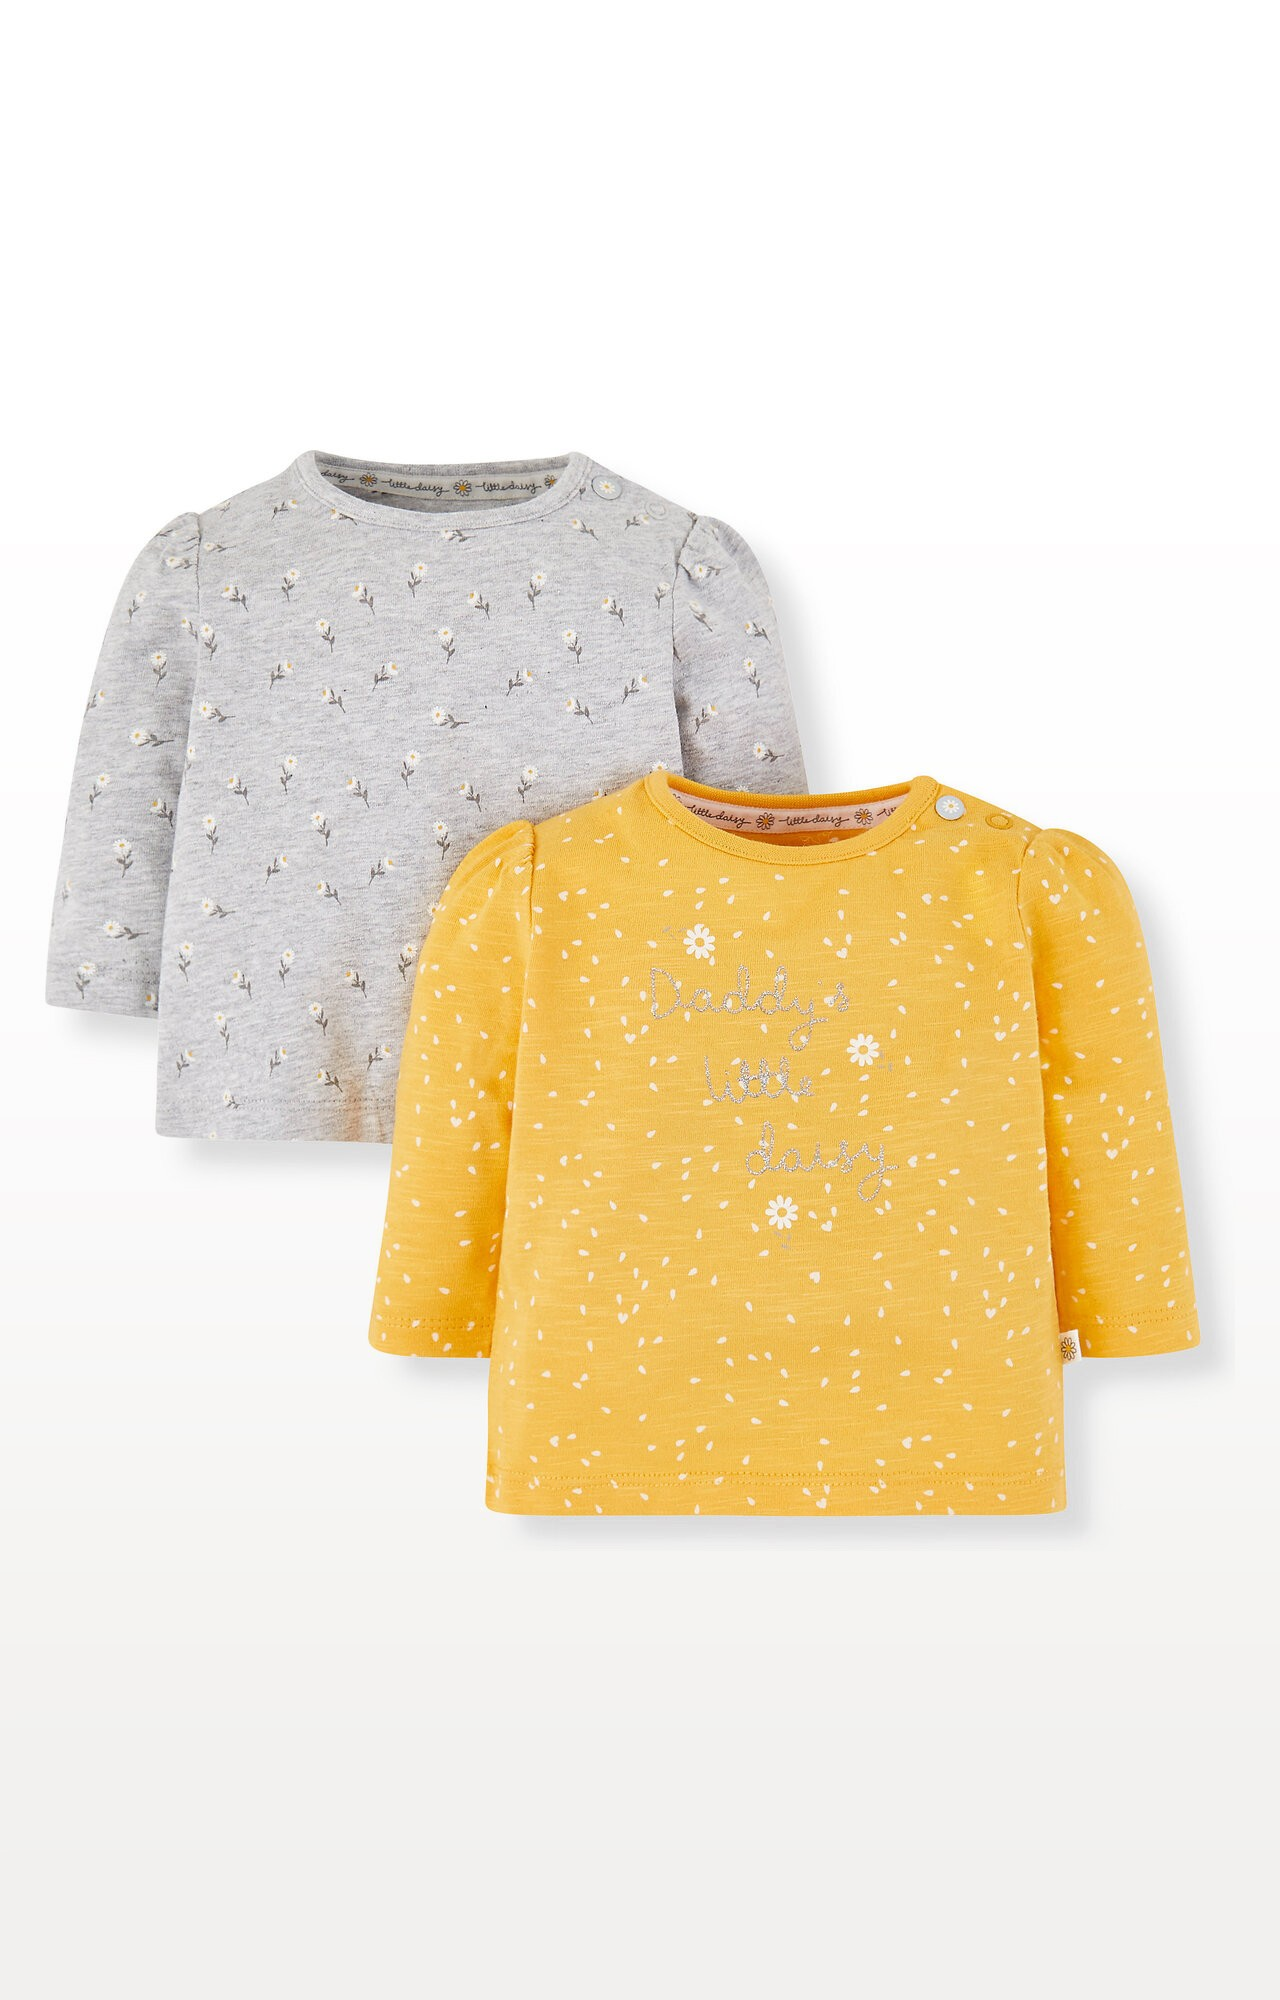 Mothercare | Yellow Daisy Tops - Pack of 2